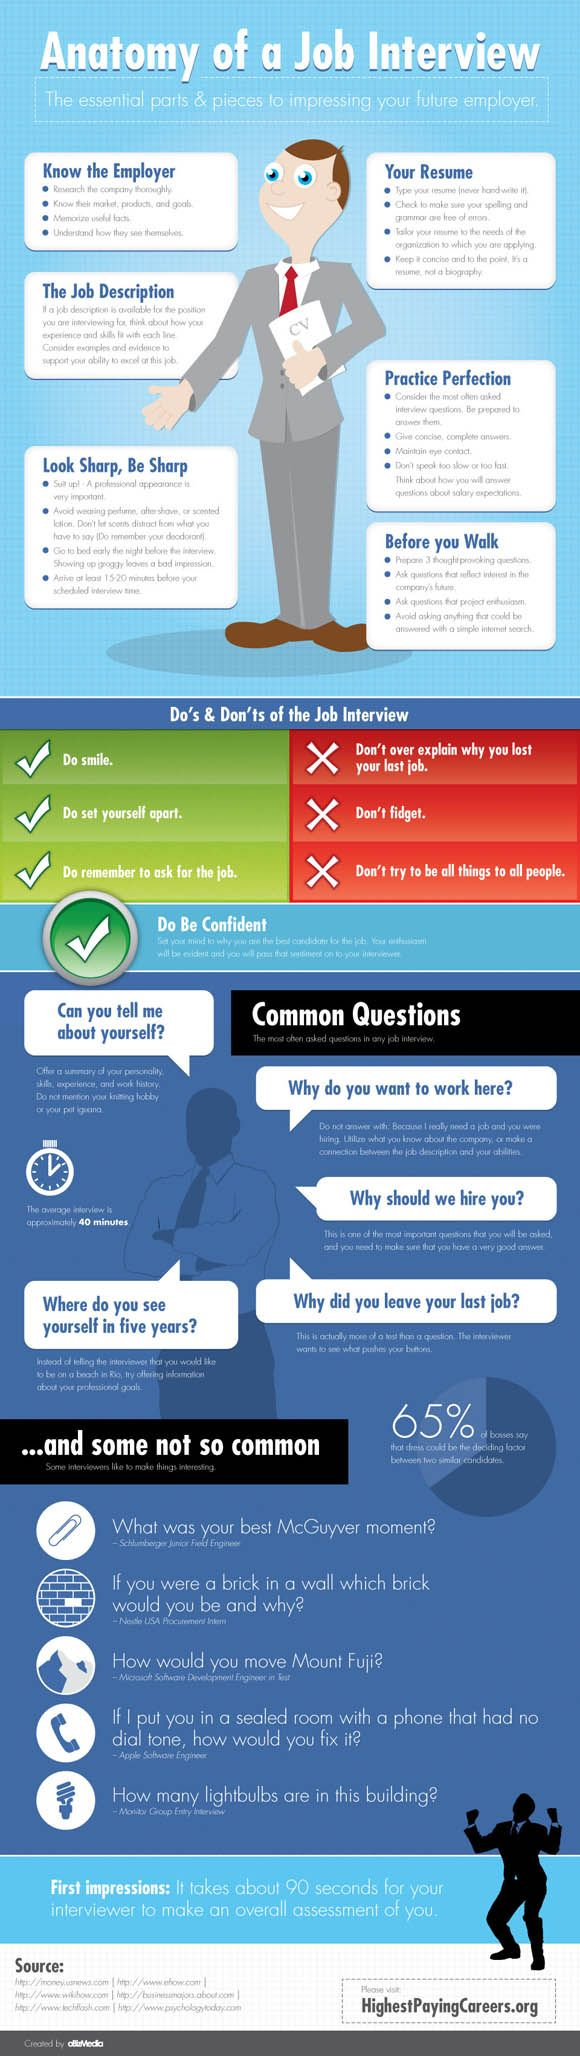 best images about interview tips interview 17 best images about interview tips interview anatomy and job interview answers